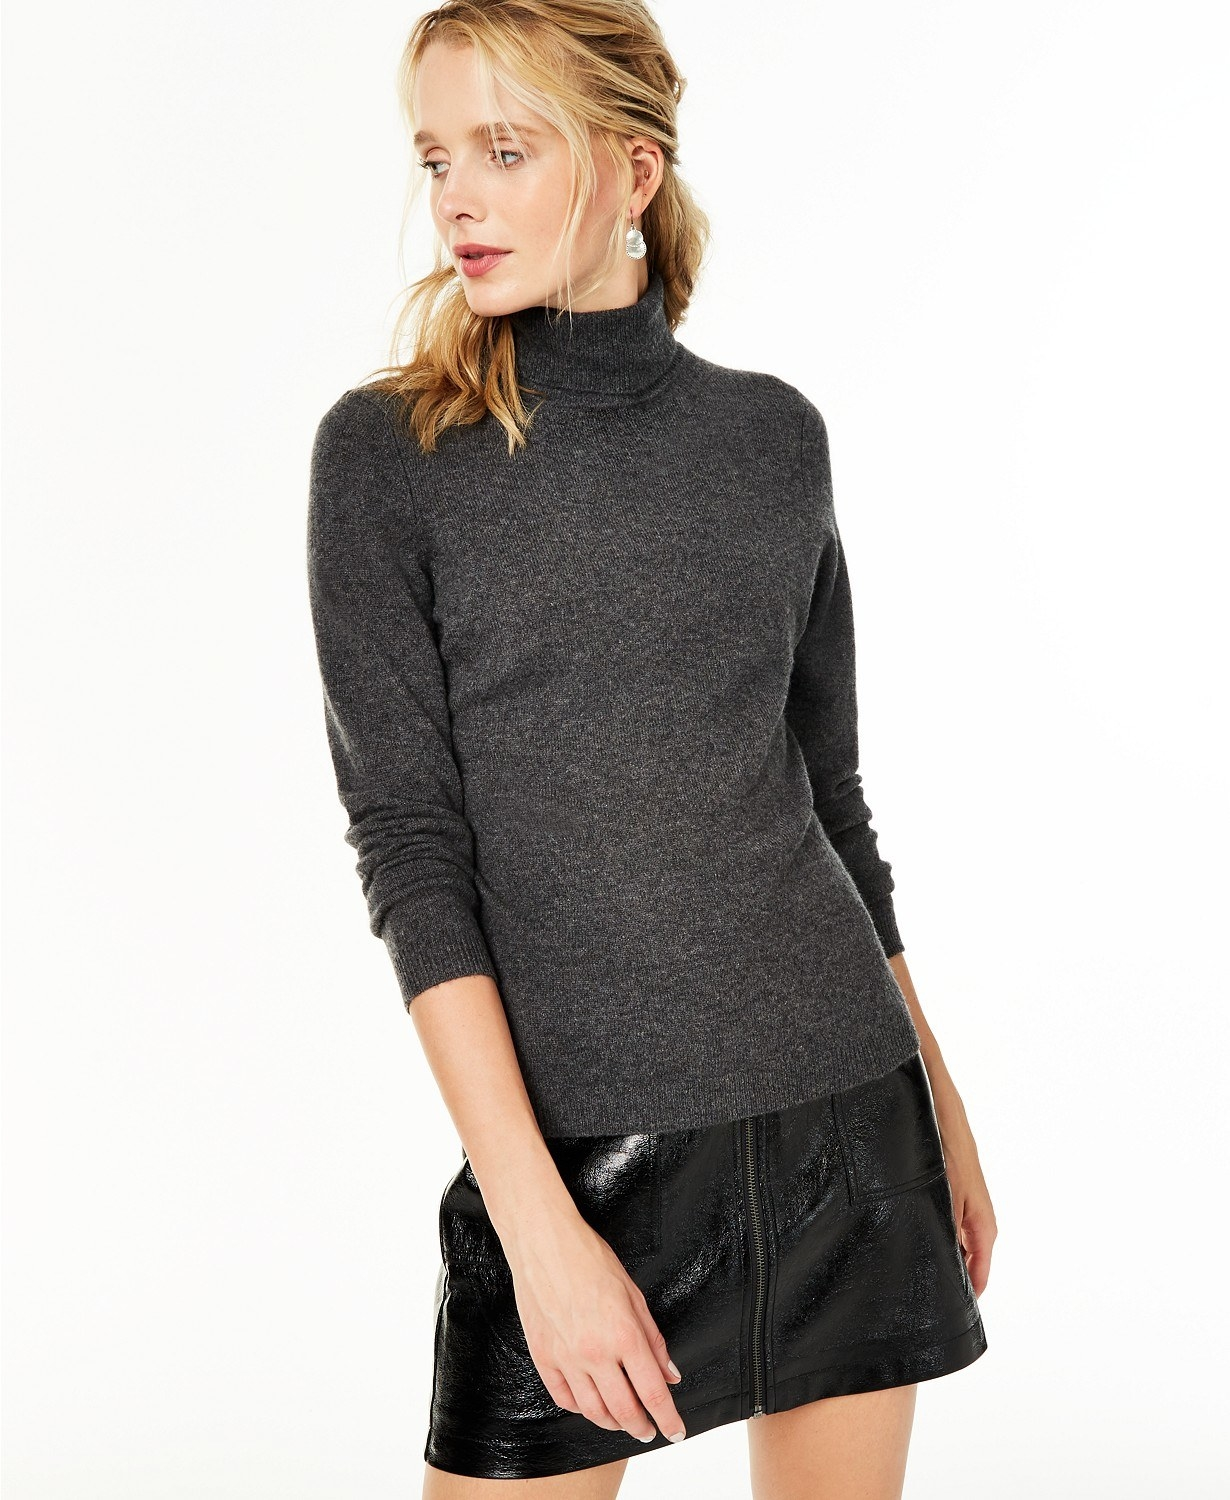 model wearing Charter Club cashmere turtleneck sweater in gray